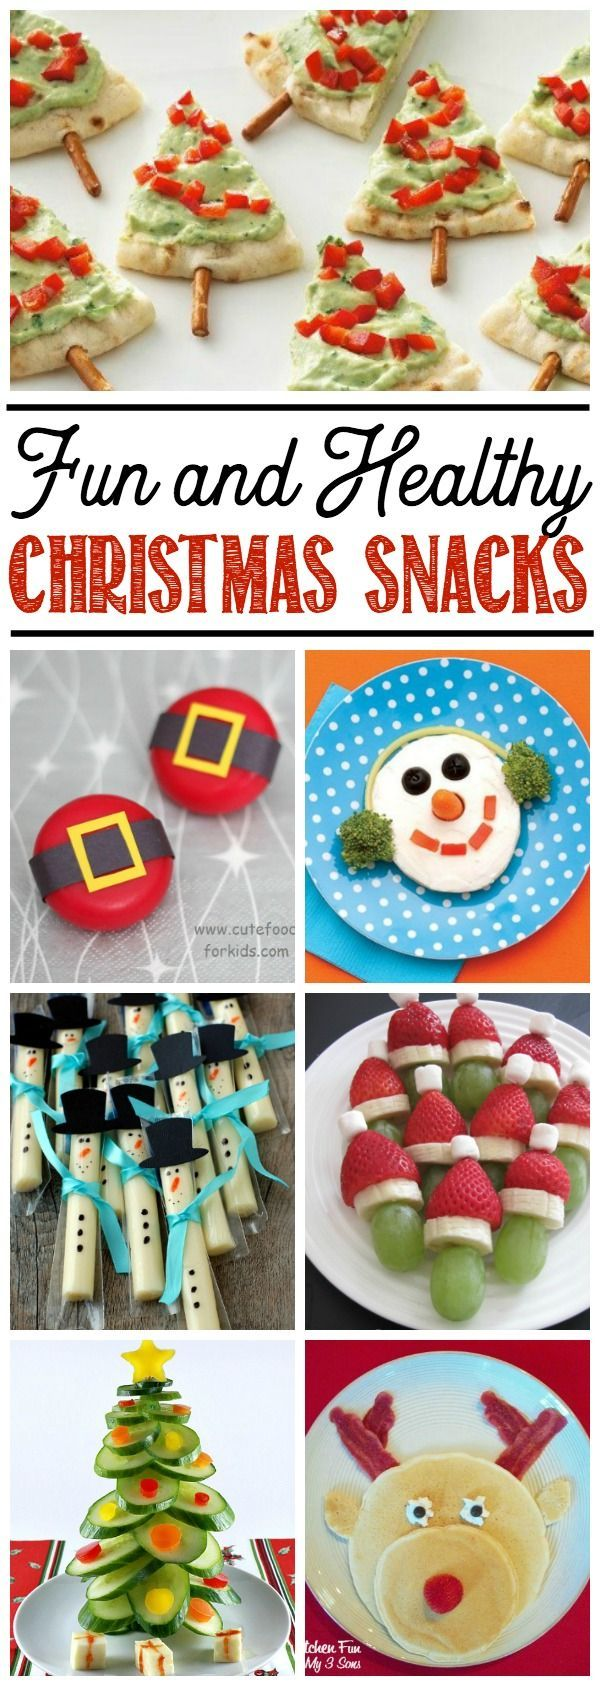 If you are looking to balance out all of those sugary treats over the holidays, check out these fun and healthy Christmas food ideas for kids!